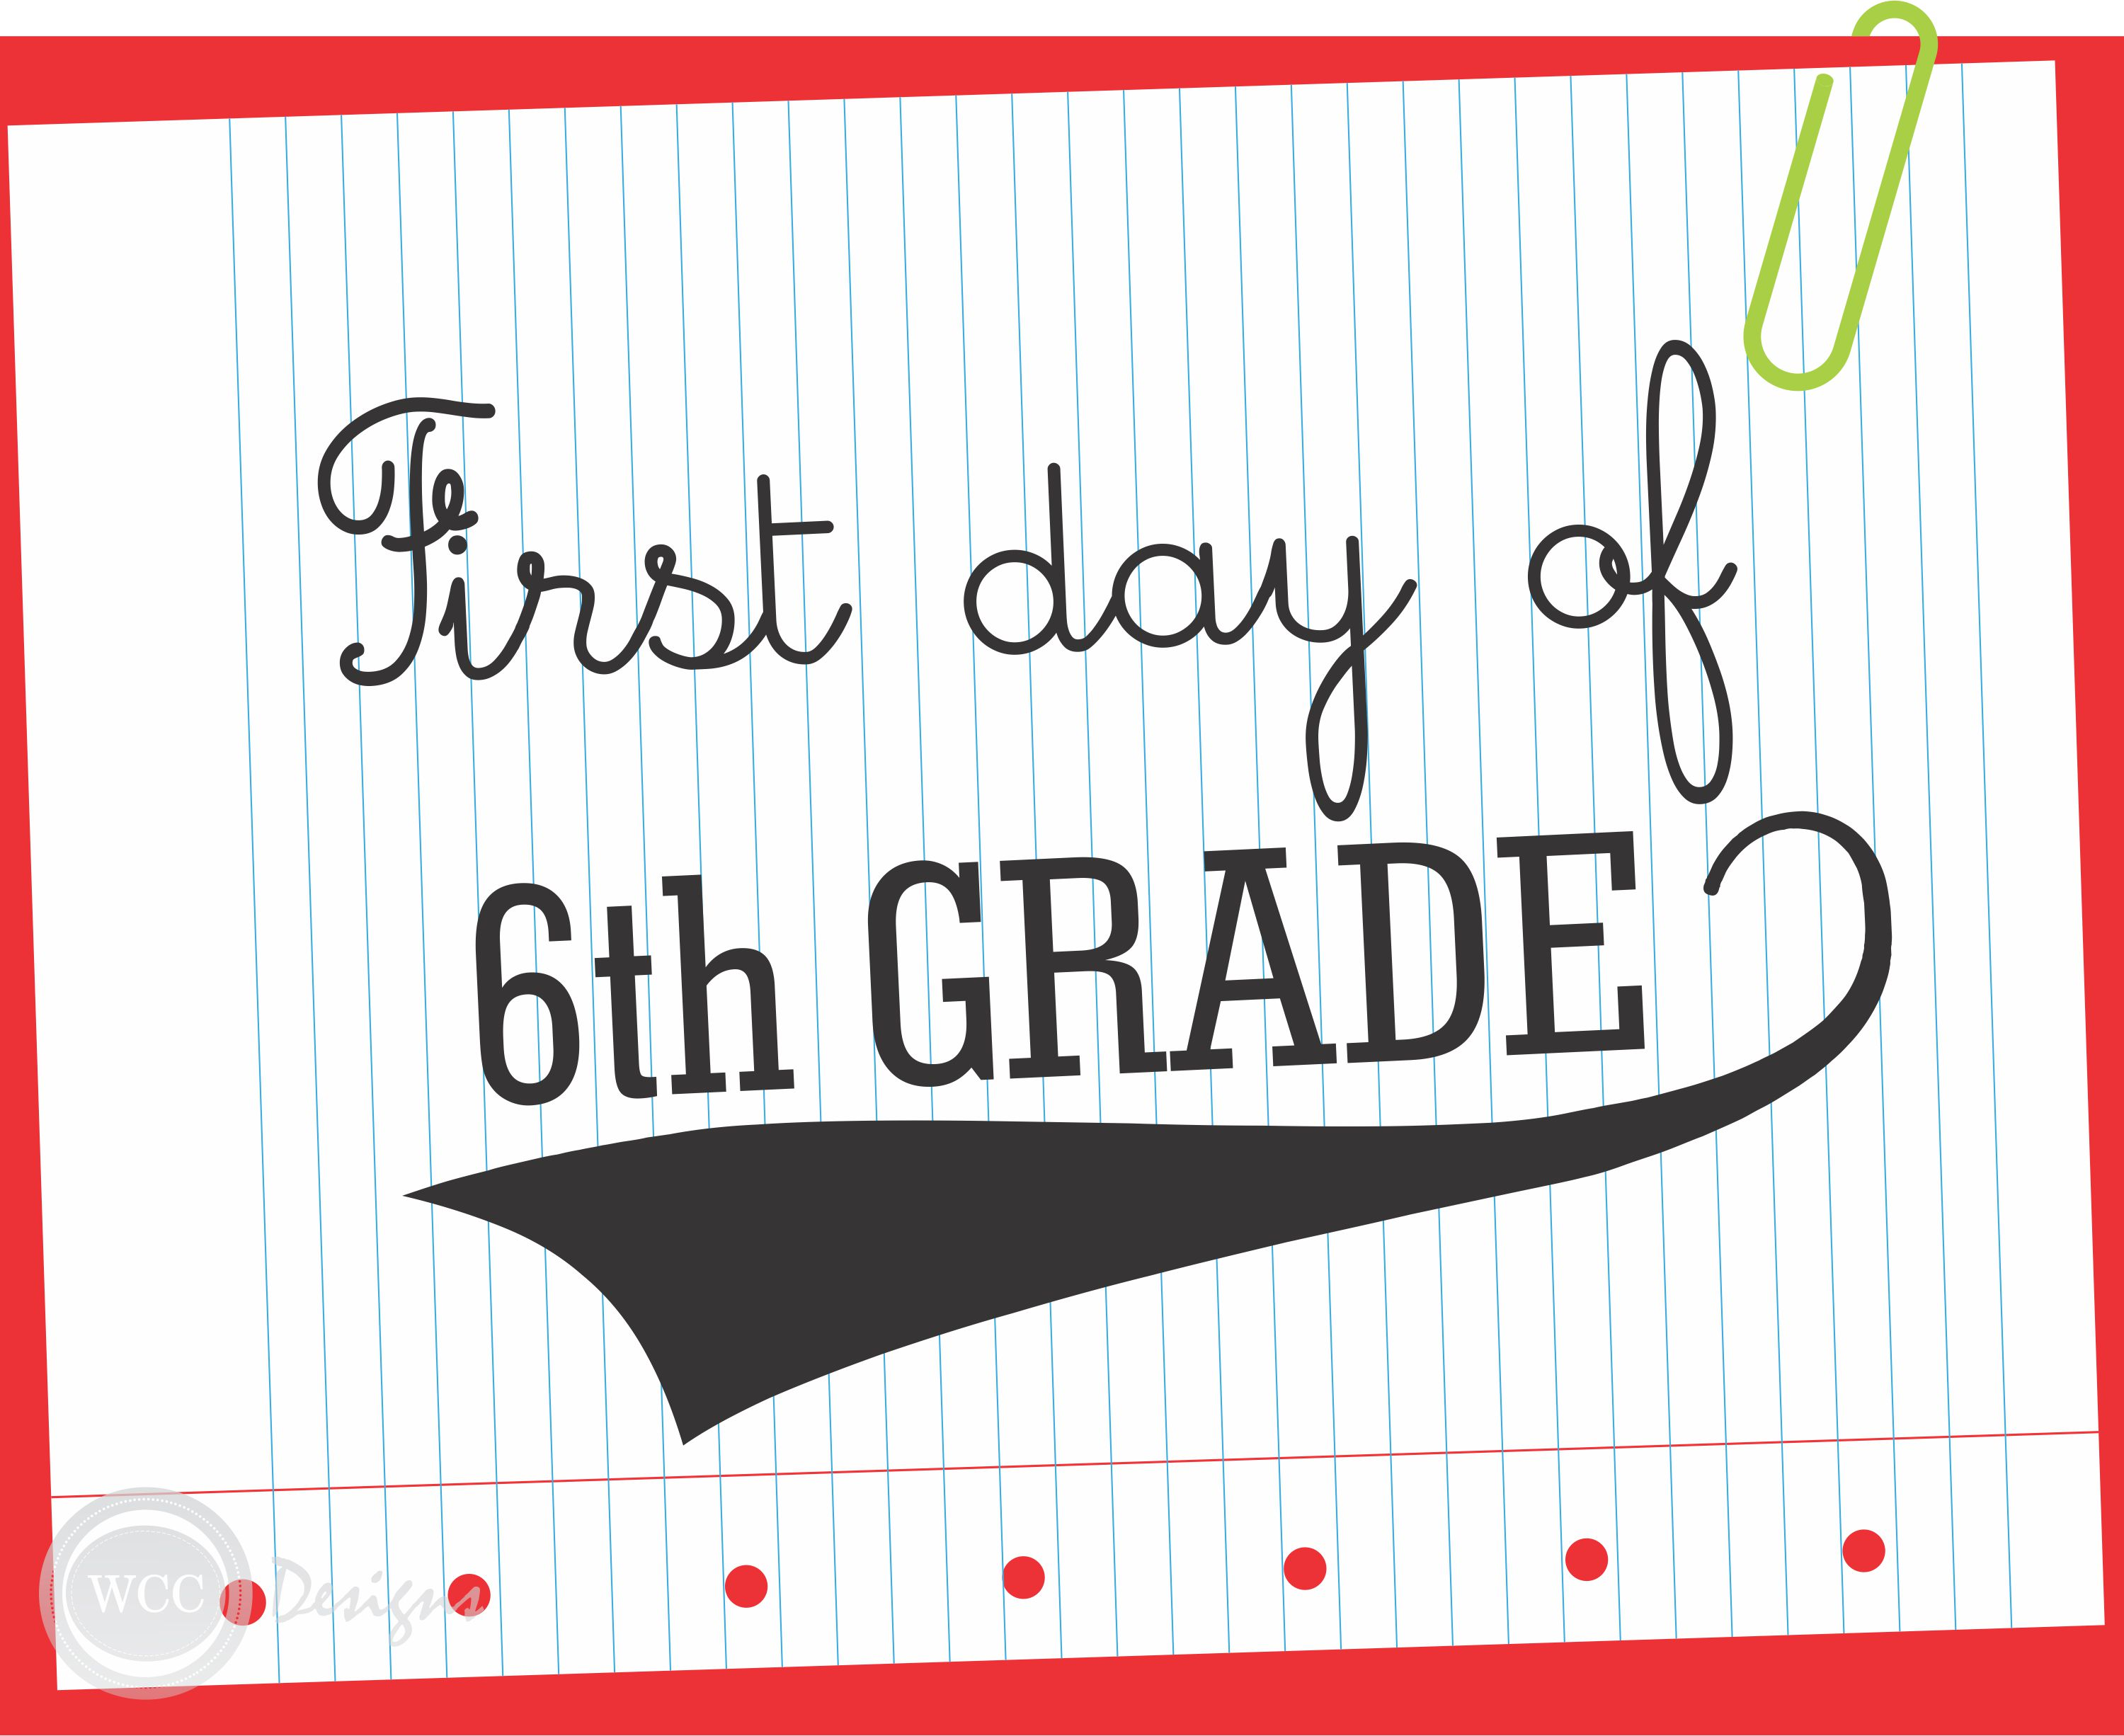 Free First Day Of School Printable Signs From Wcc Designs   Catch My